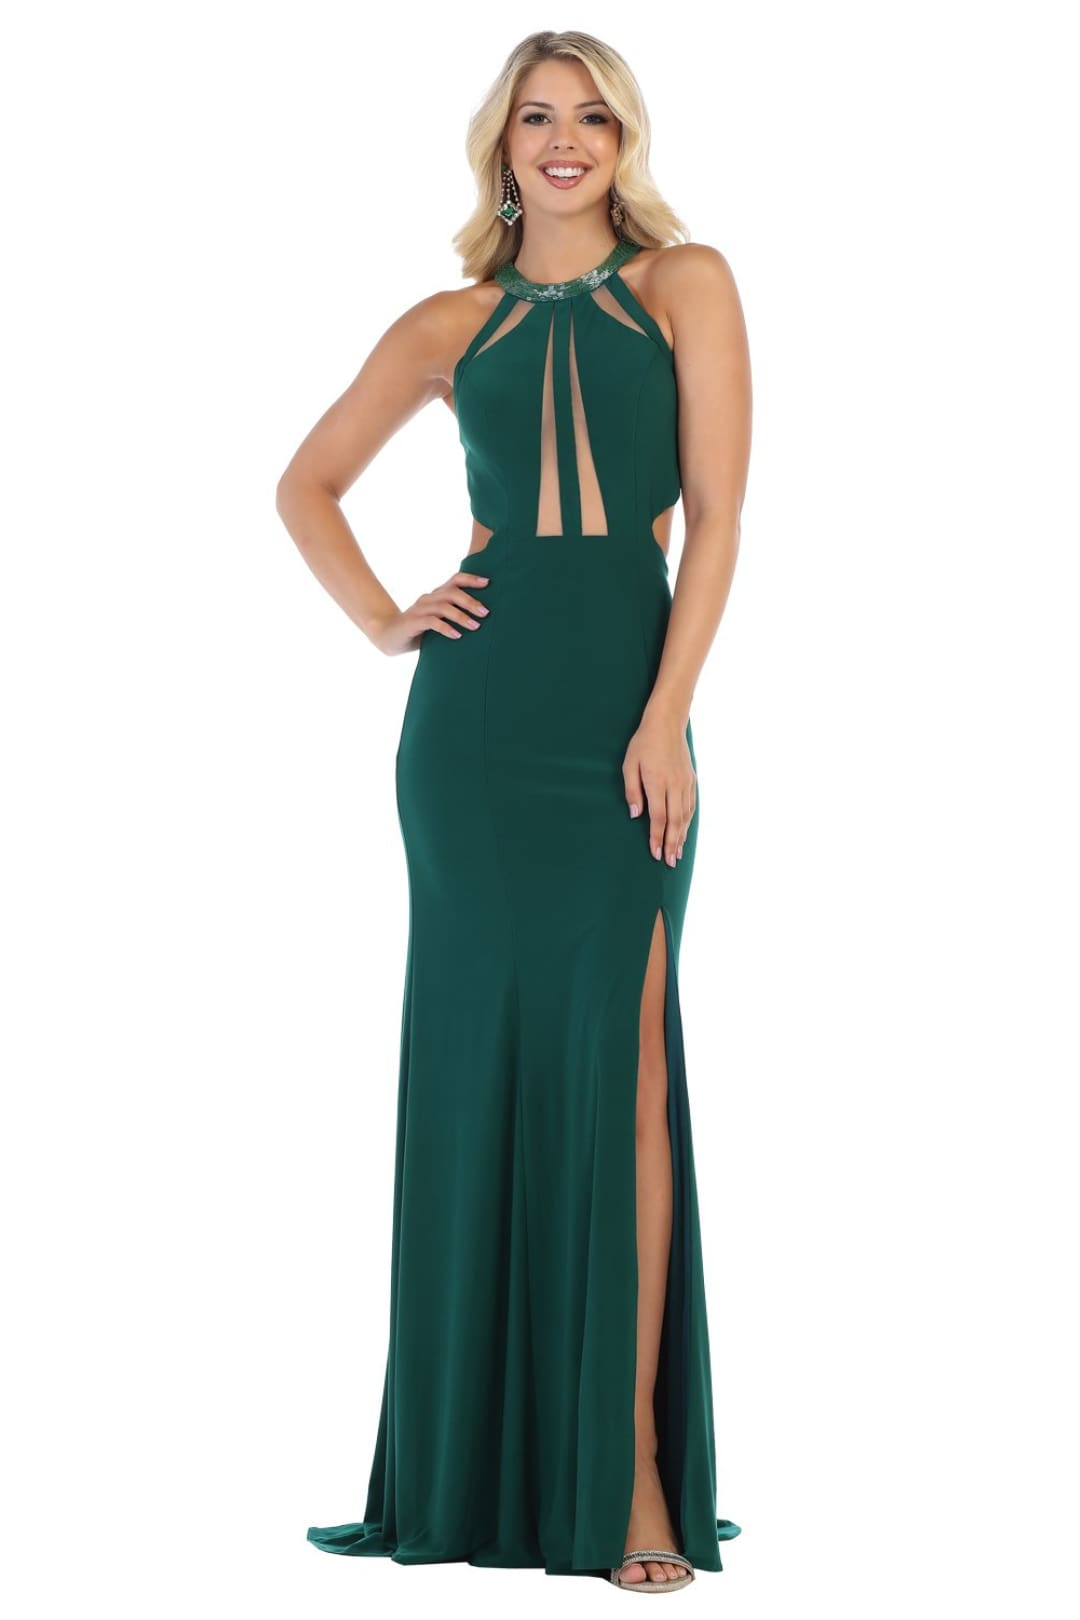 Simple Sexy Red Carpet Gown - Hunter Green / 2